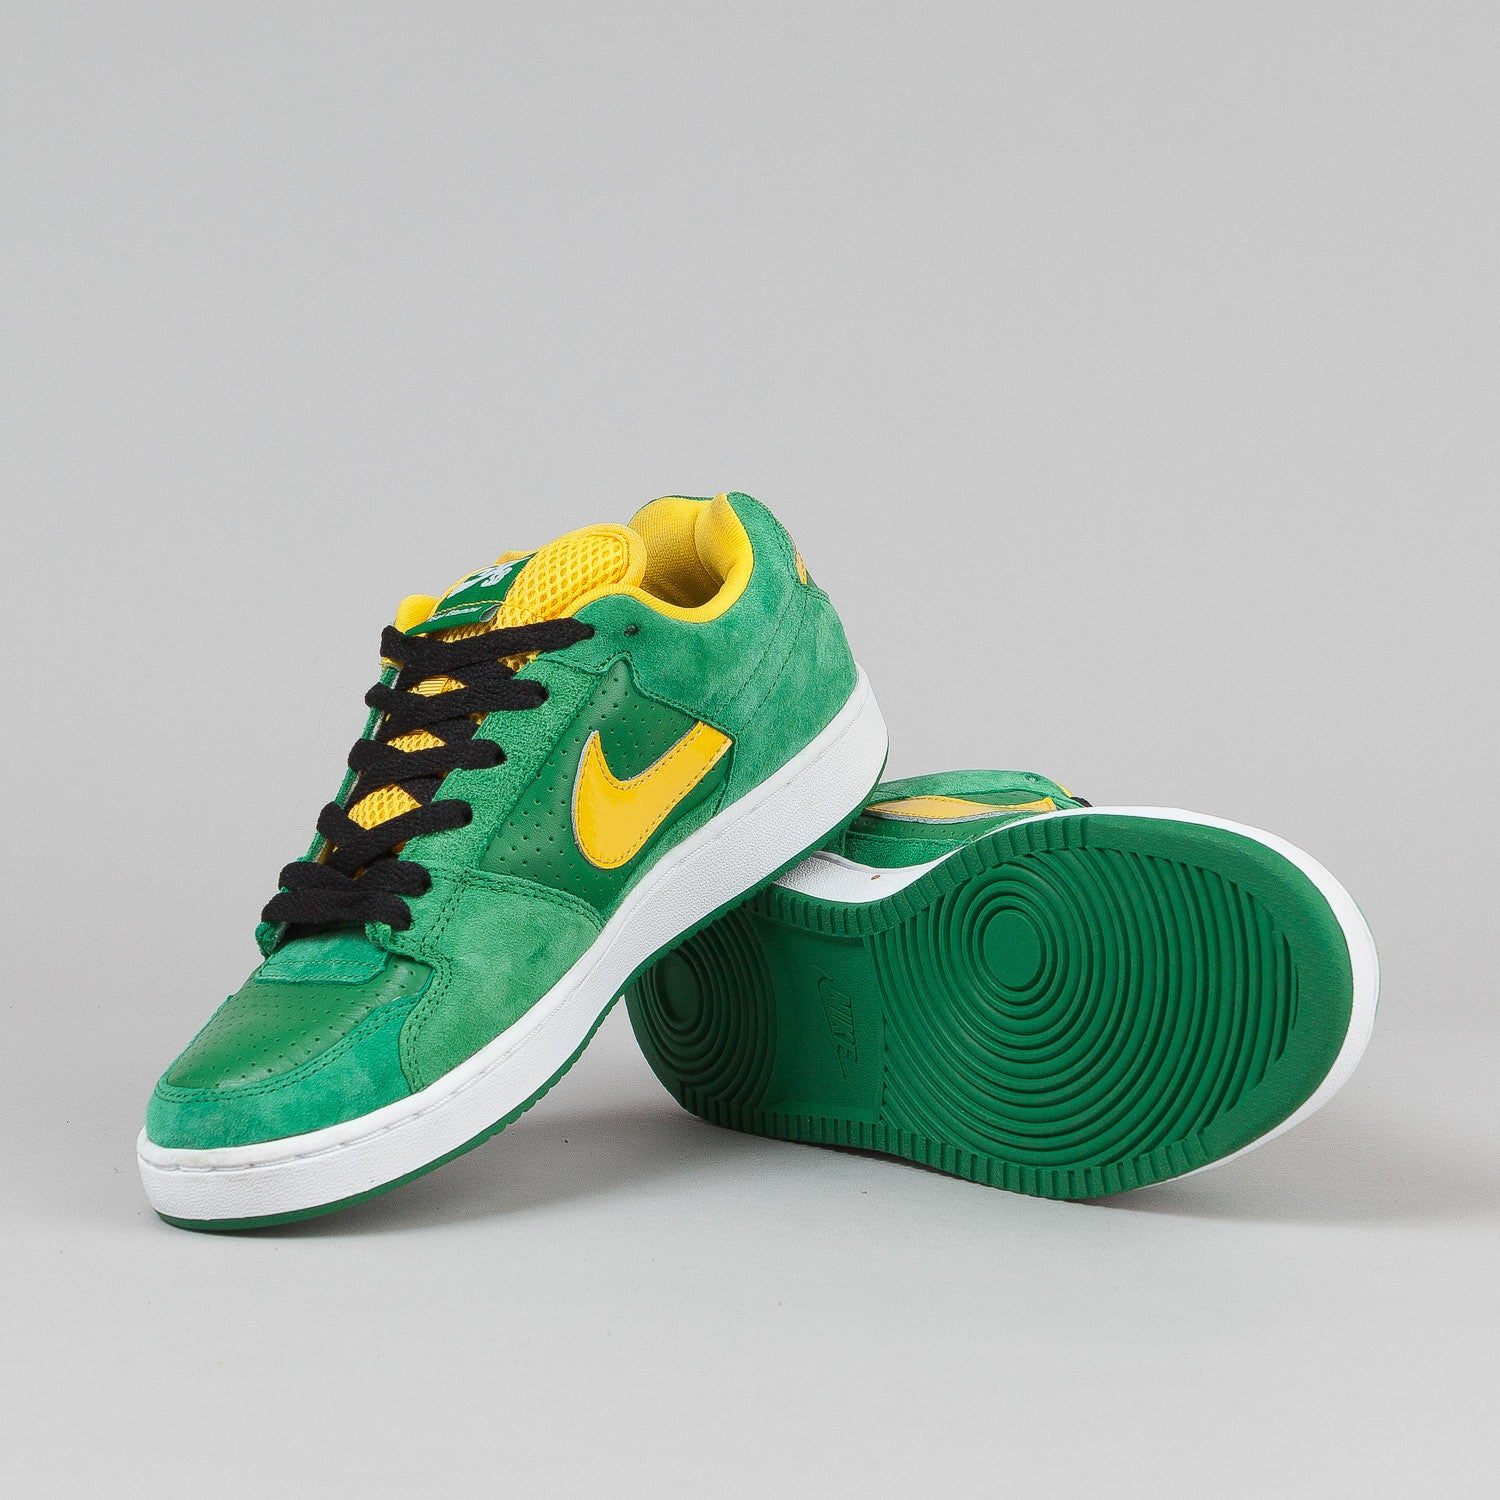 Nike SB Team Edition Shoes - Classic Green / Varsity Maize